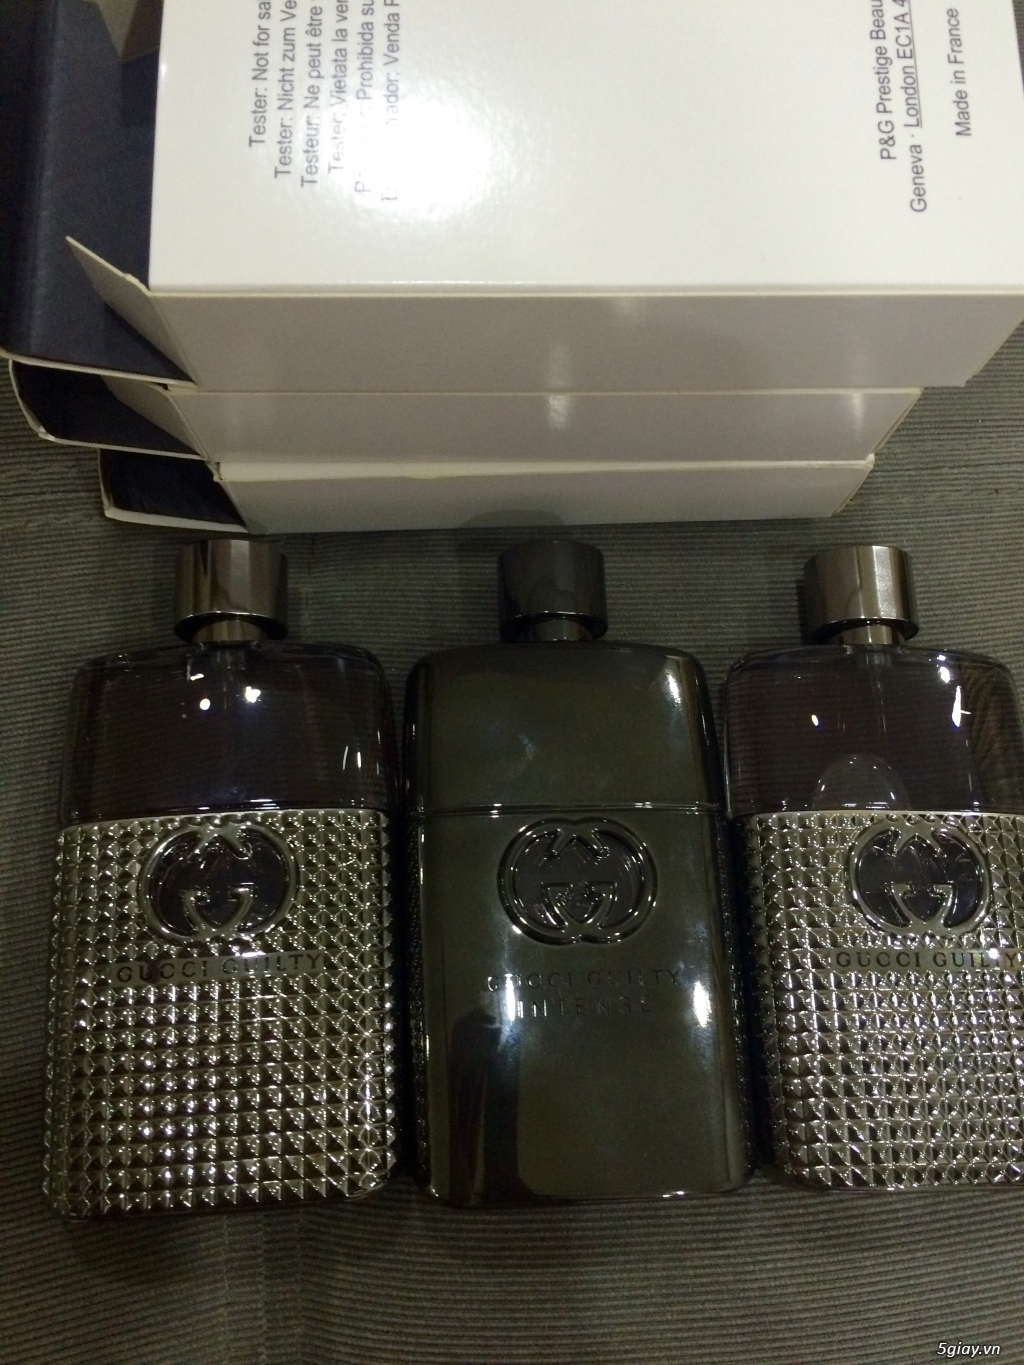 Nô s scent: ONLY FOR TESTER NOT FOR SALE - 6